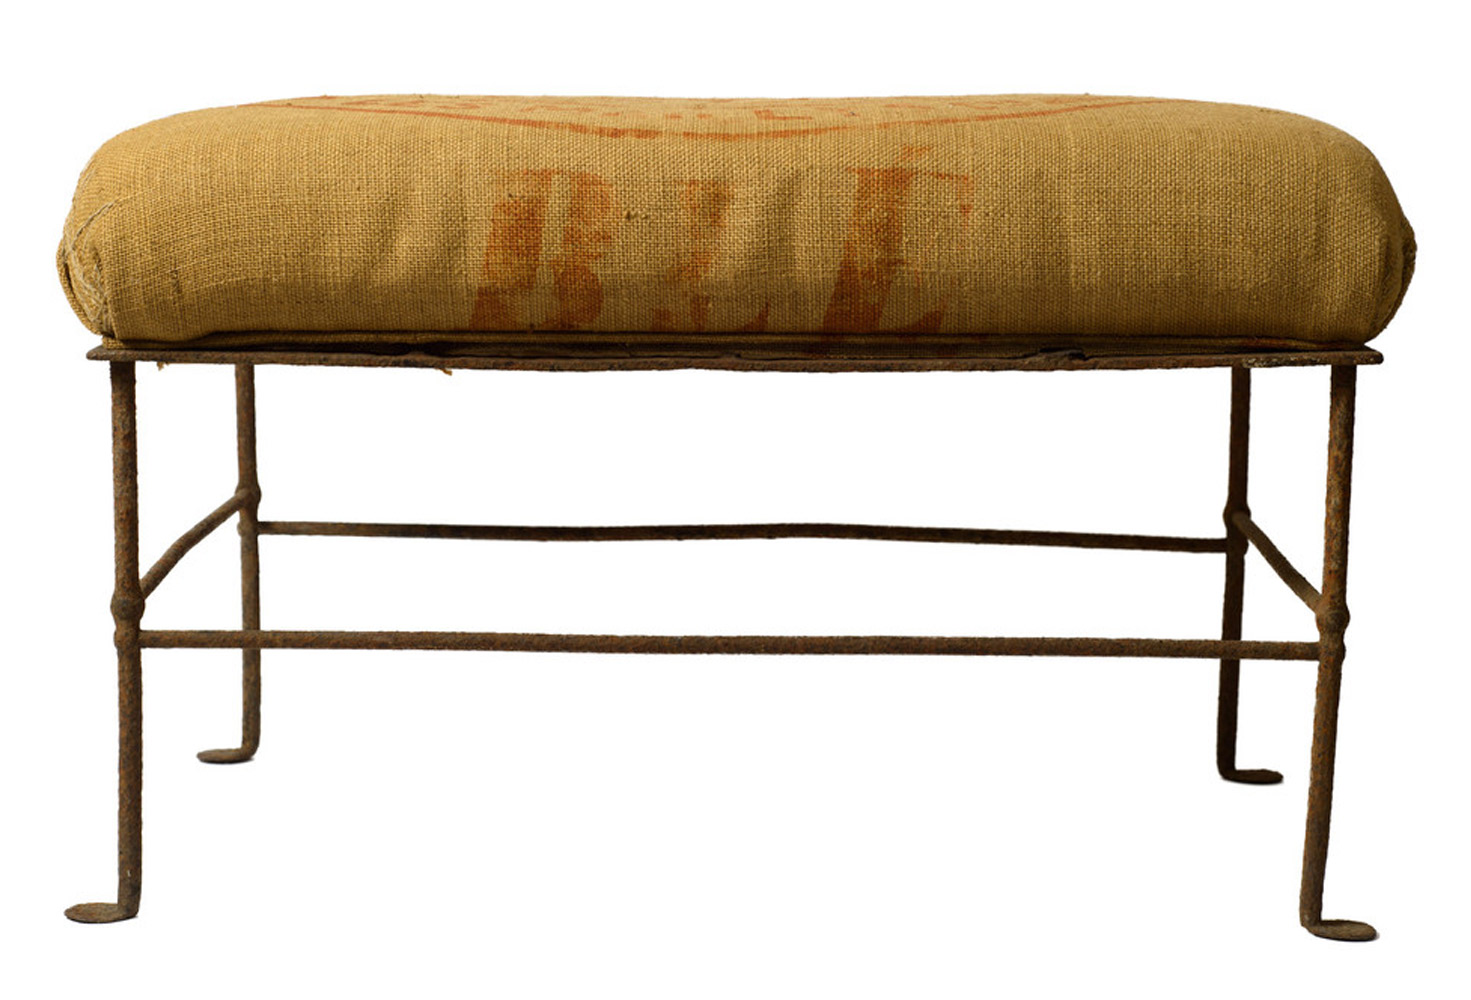 Antique French Grain Sack Iron Bench Omero Home